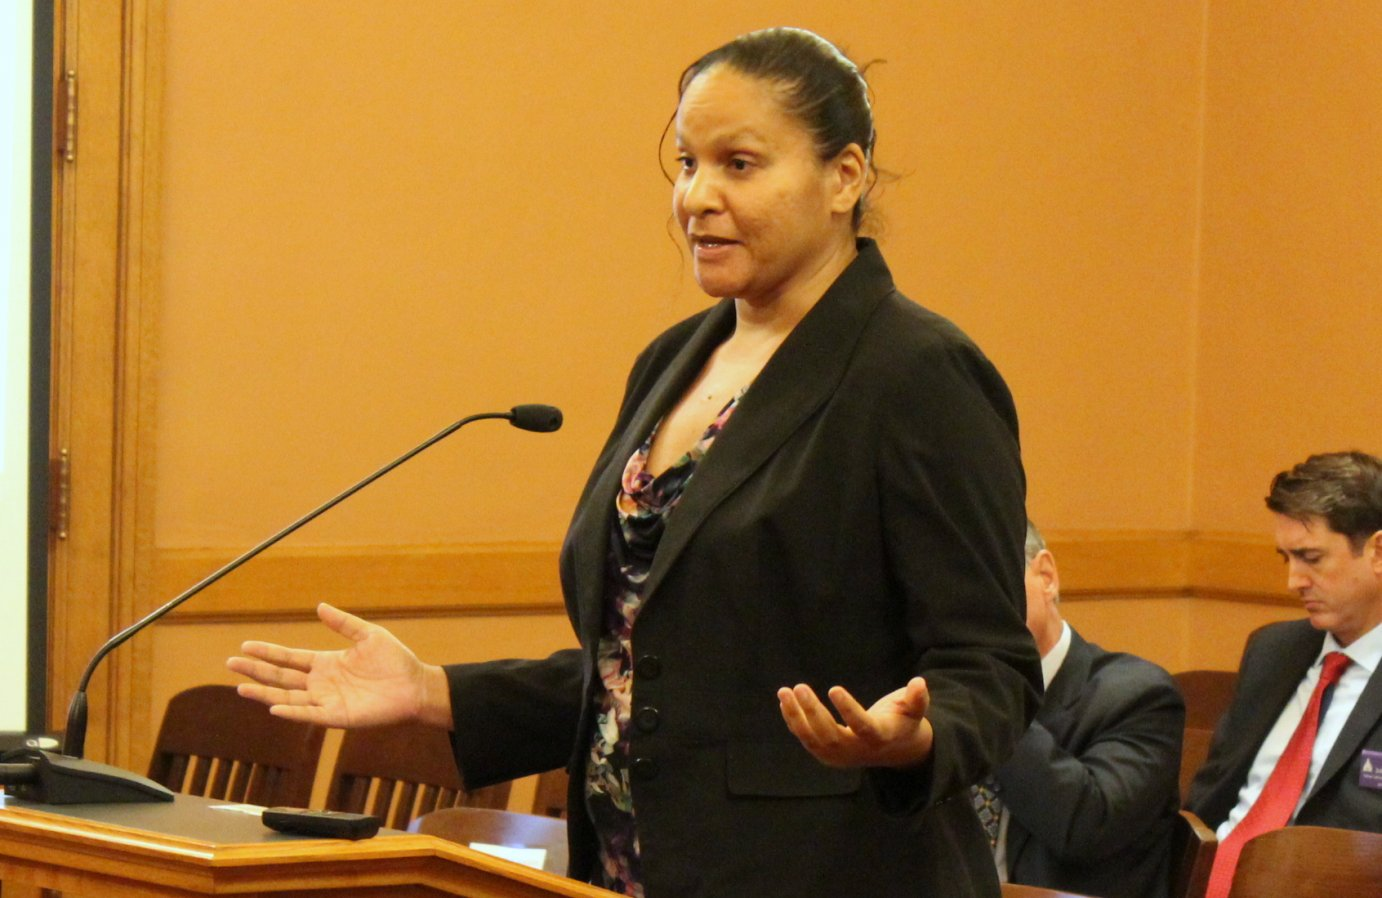 Claudette Humphrey speaking to the committee Wednesday. (Photo by Stephen Koranda)